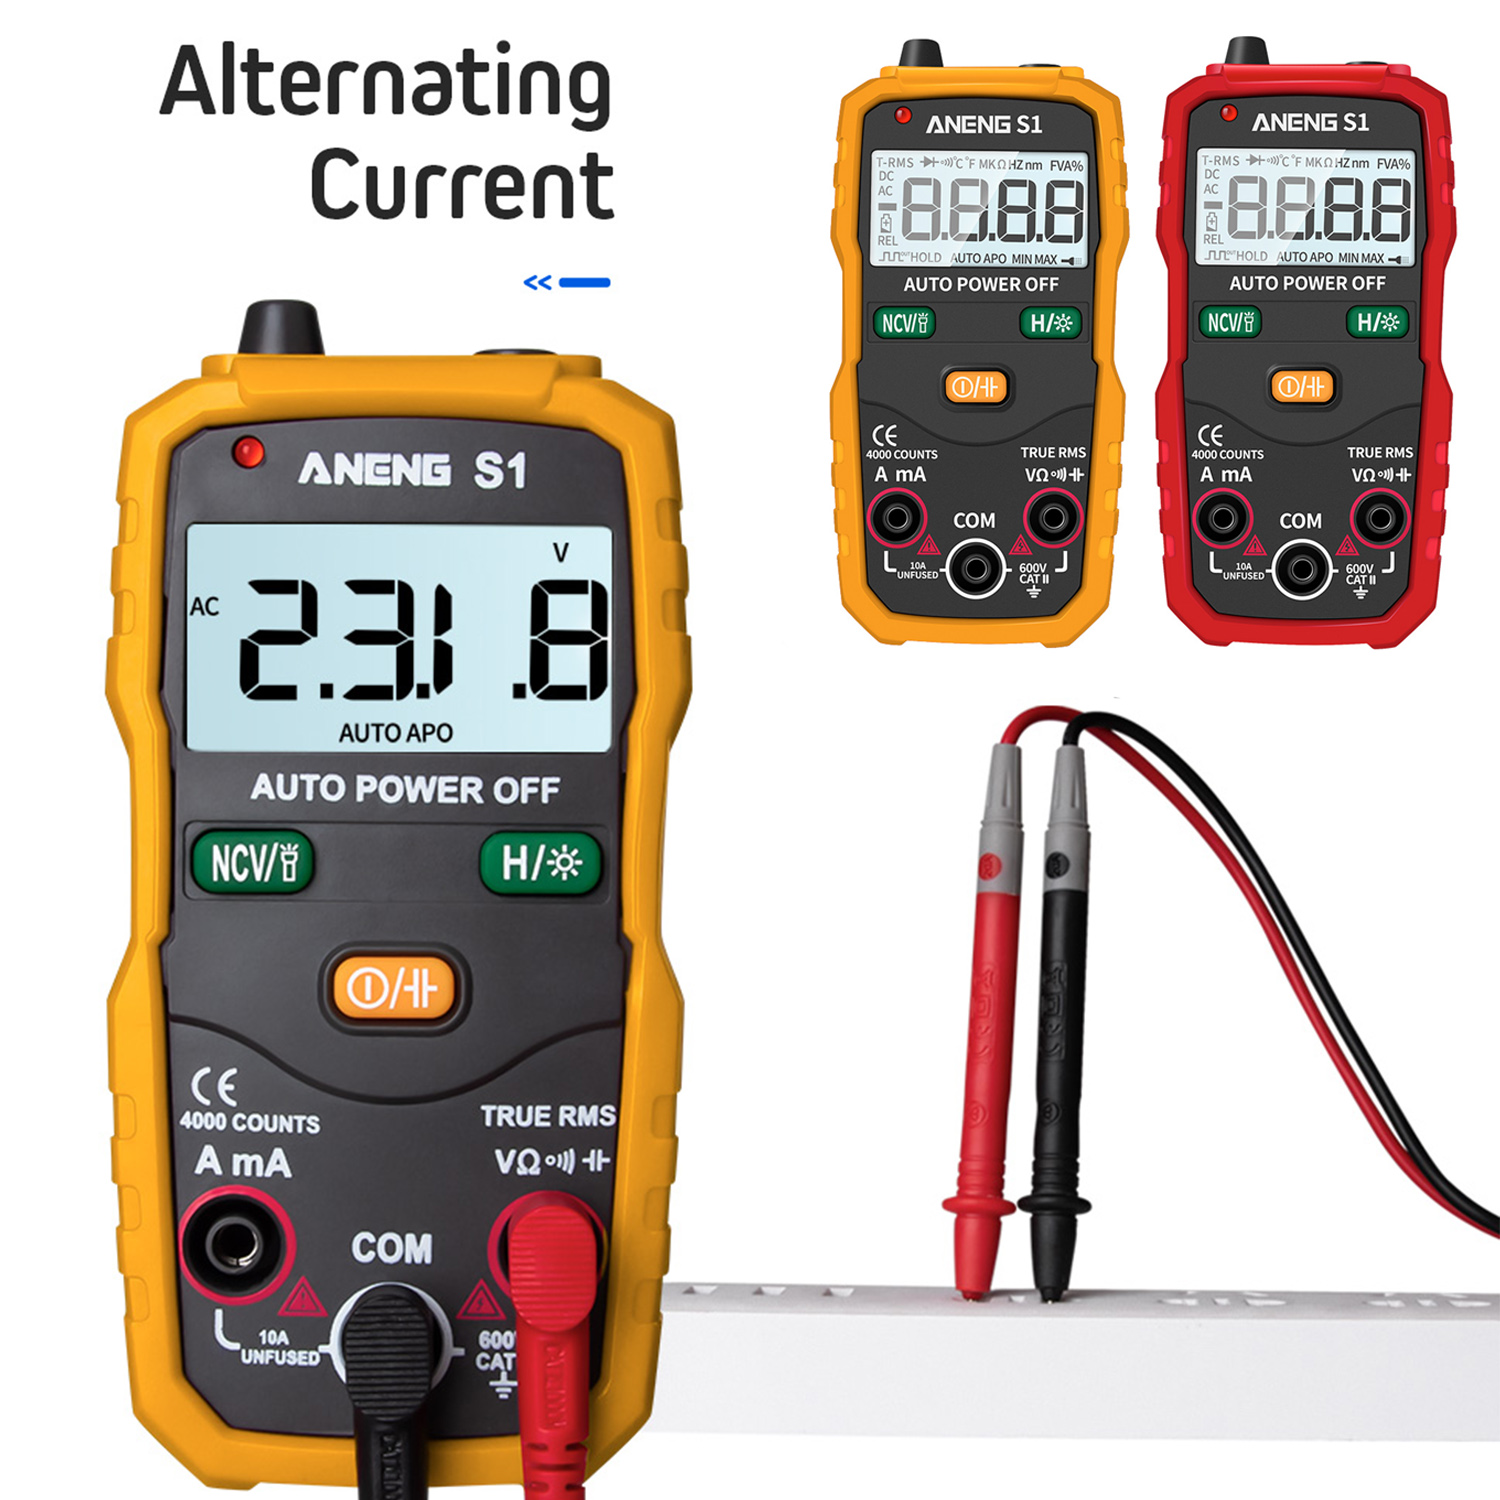 Hand-held Digital Multimeter Auto Range True RMS Digital Multimeter AC\\\/DC Current Voltage Ohm Continuity Tester